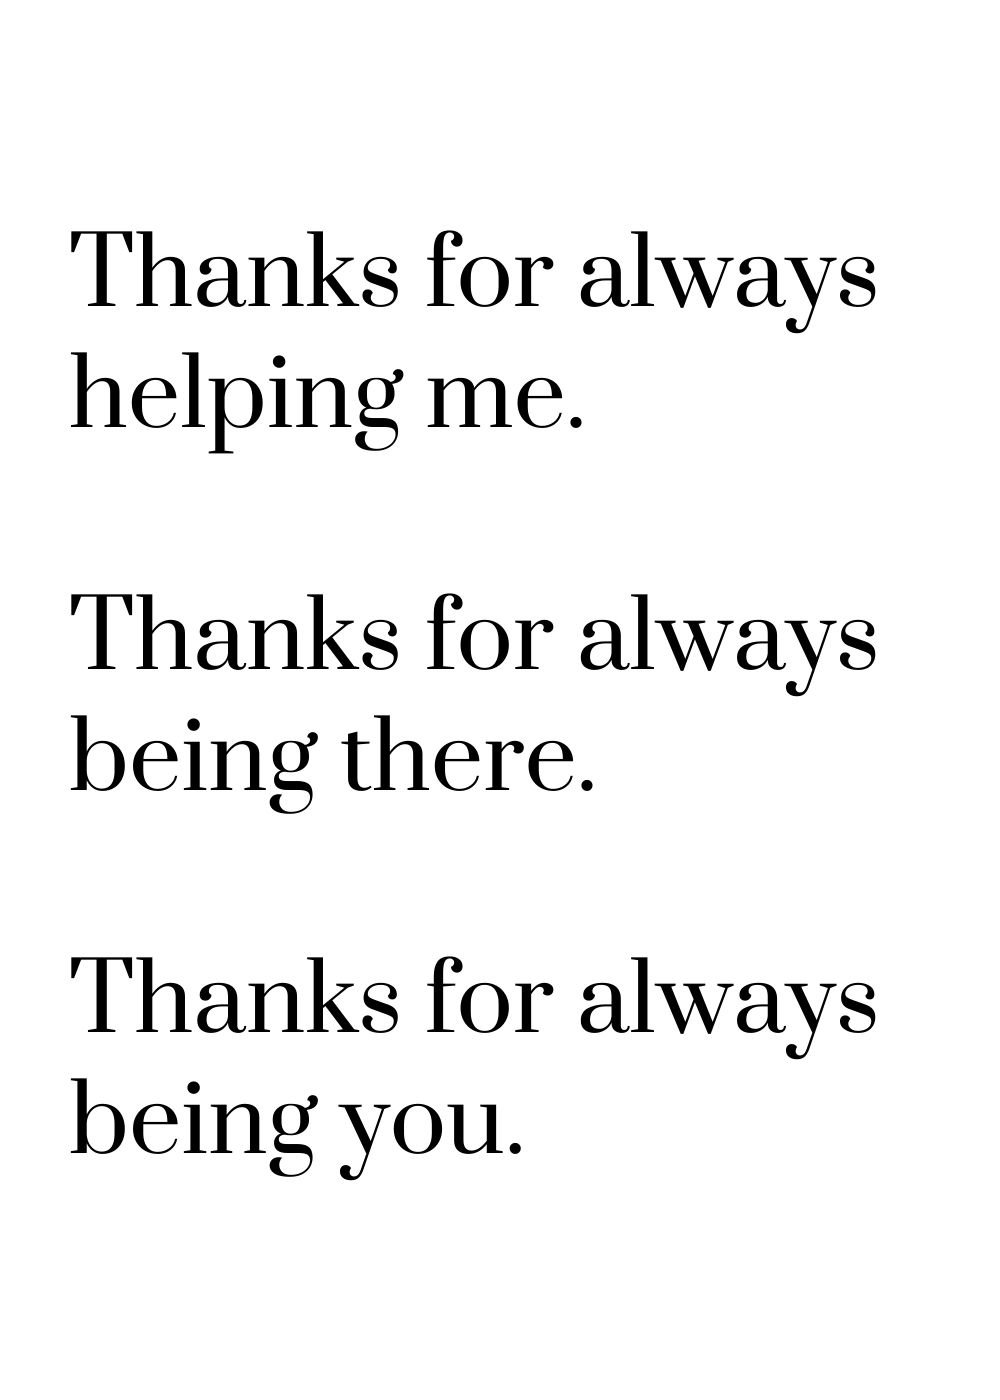 thanks for always helping me